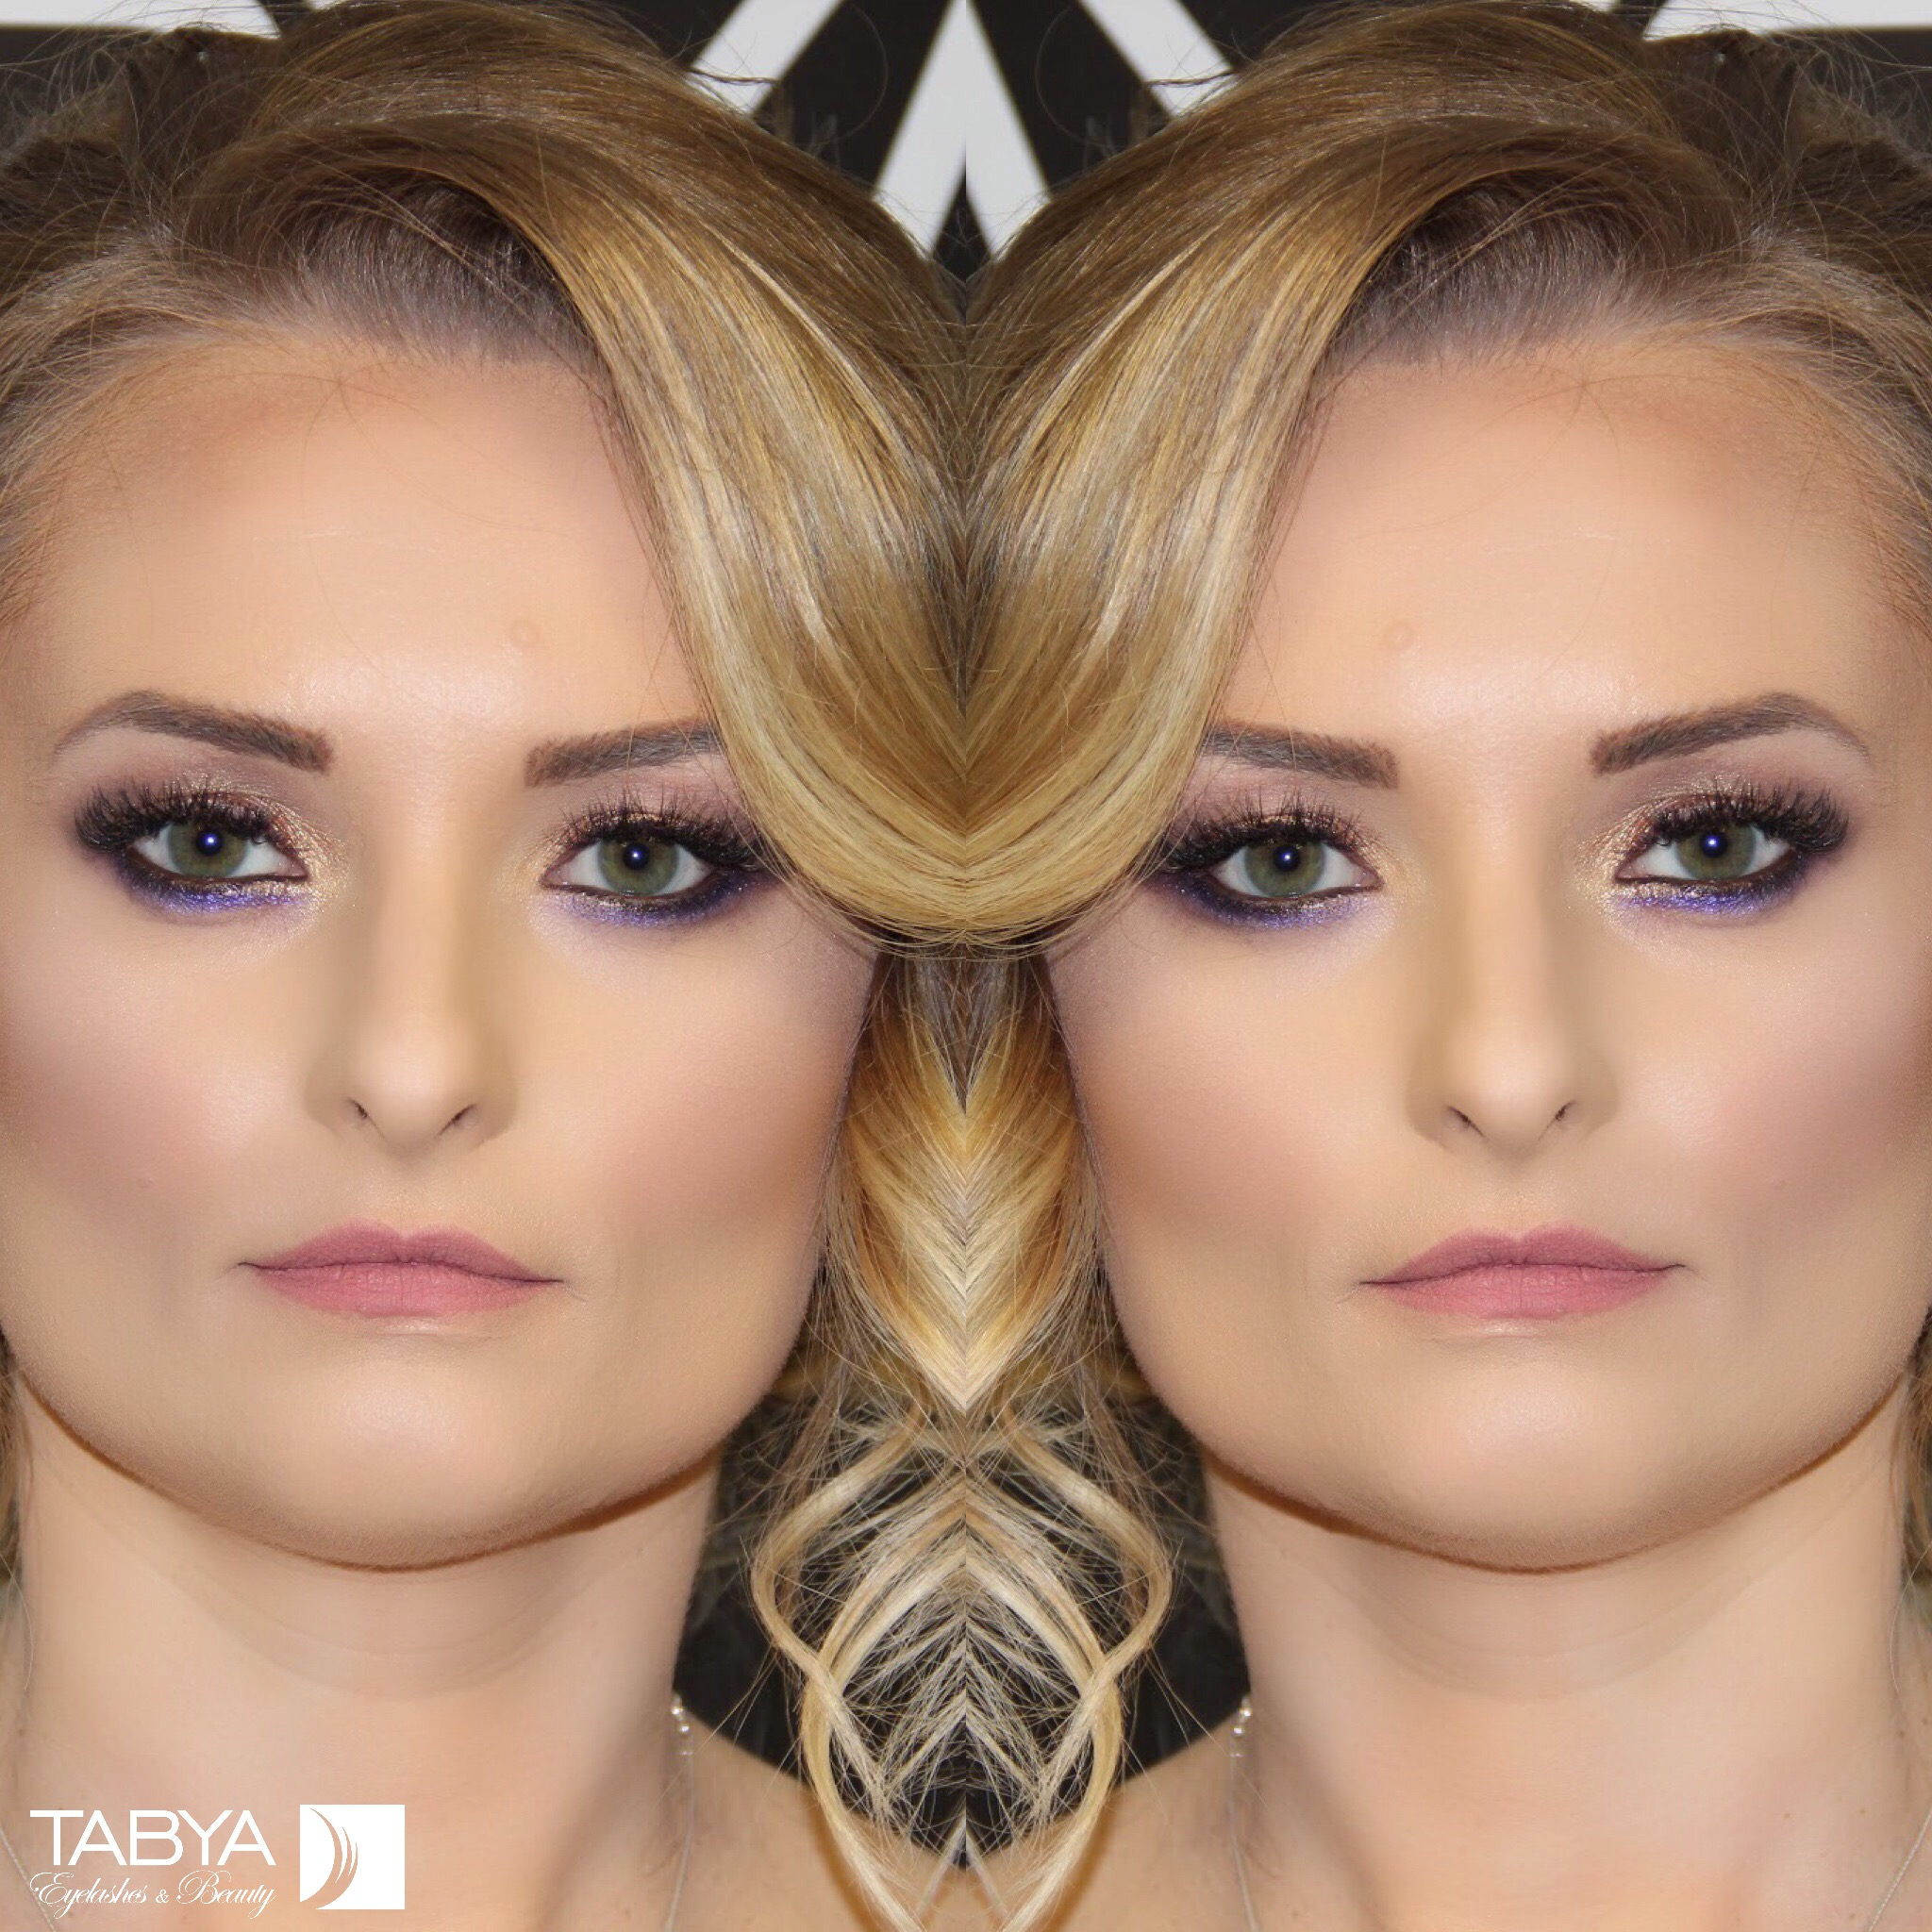 make-up 2016 bucuresti